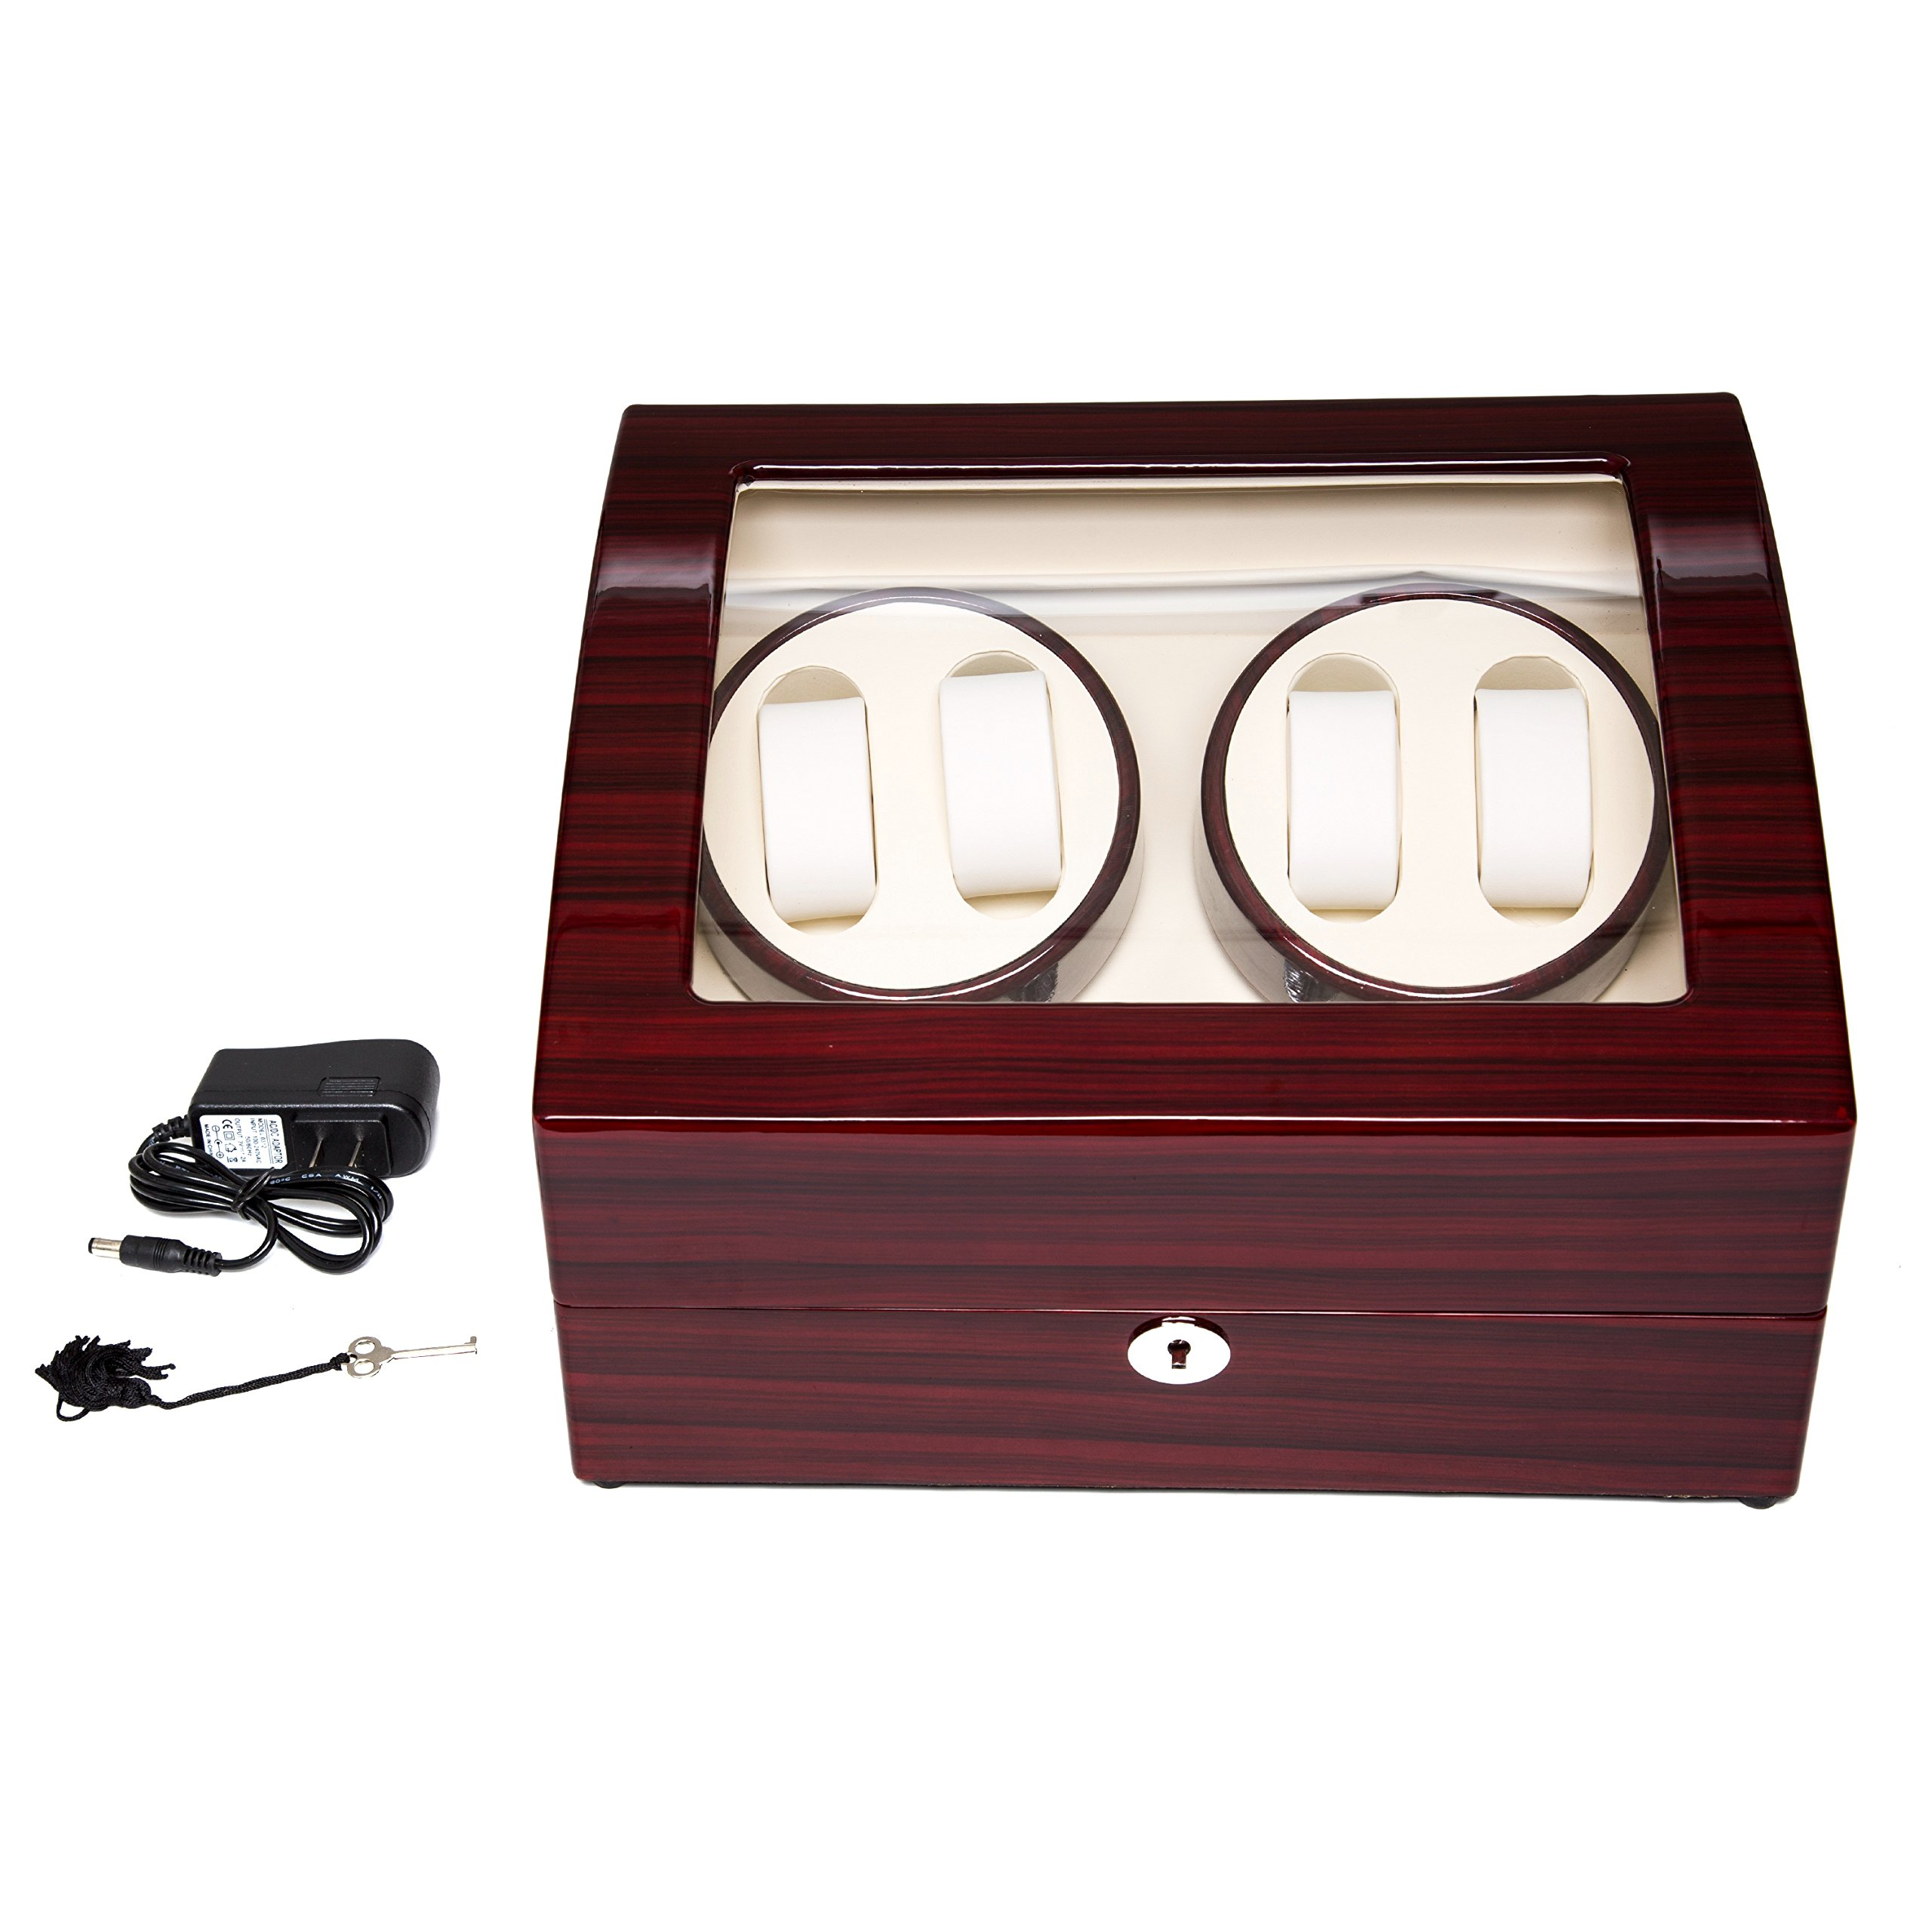 Wood 4+6 Watch Winder Mens Watches Box Storage Display Automatic Rotation Jewelry Case Organizer by Gregarder (Image #2)